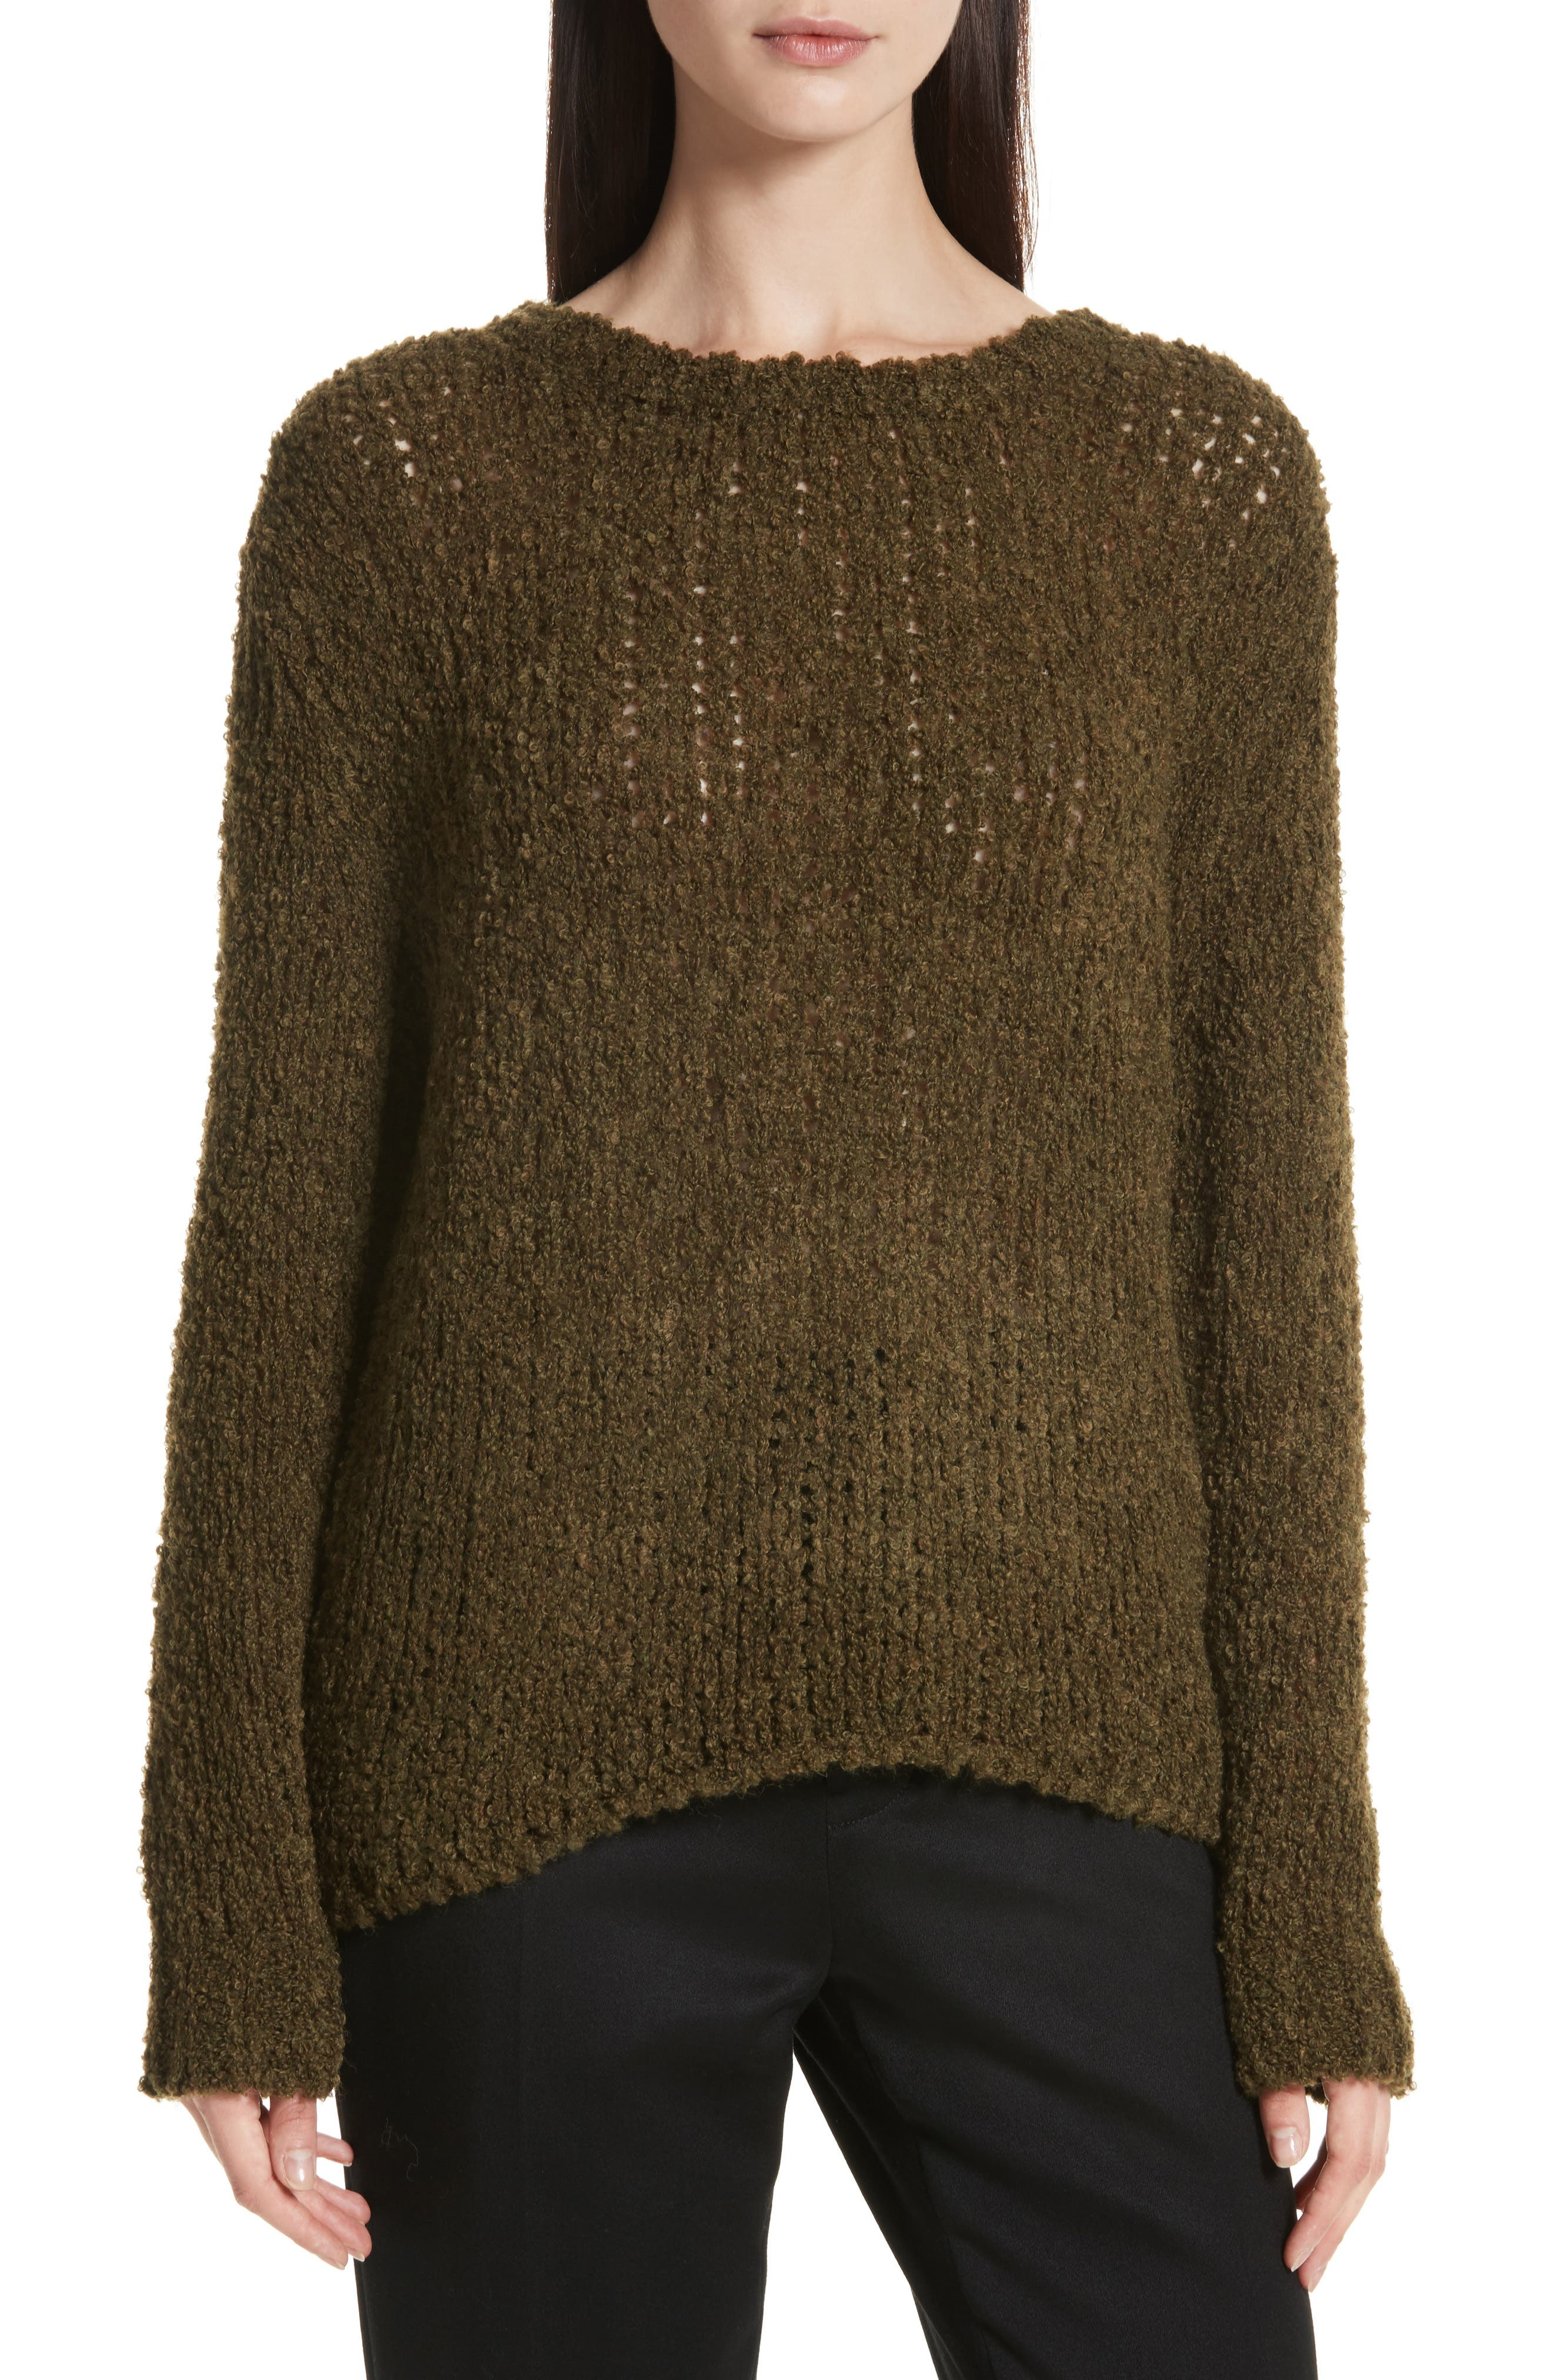 Cresent Cutout Sweater,                         Main,                         color, Olive